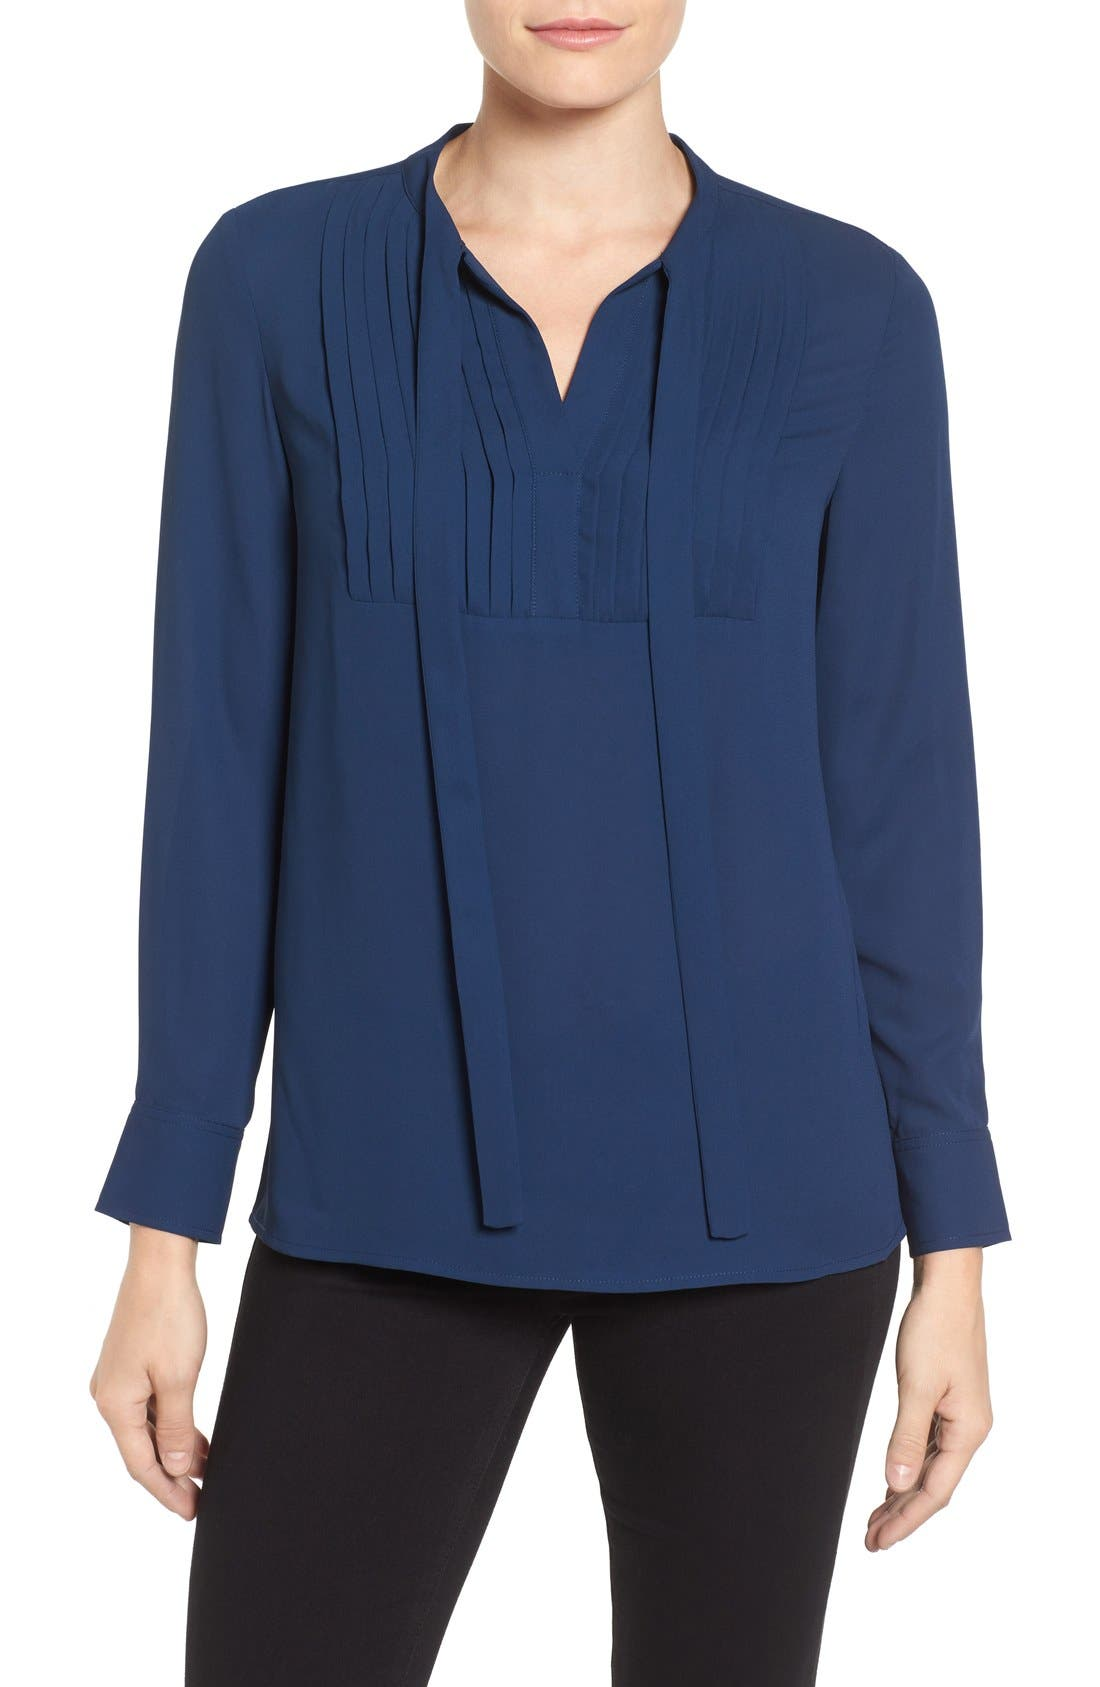 Alternate Image 1 Selected - Vince Camuto Tie Neck Pleat Tuxedo Blouse